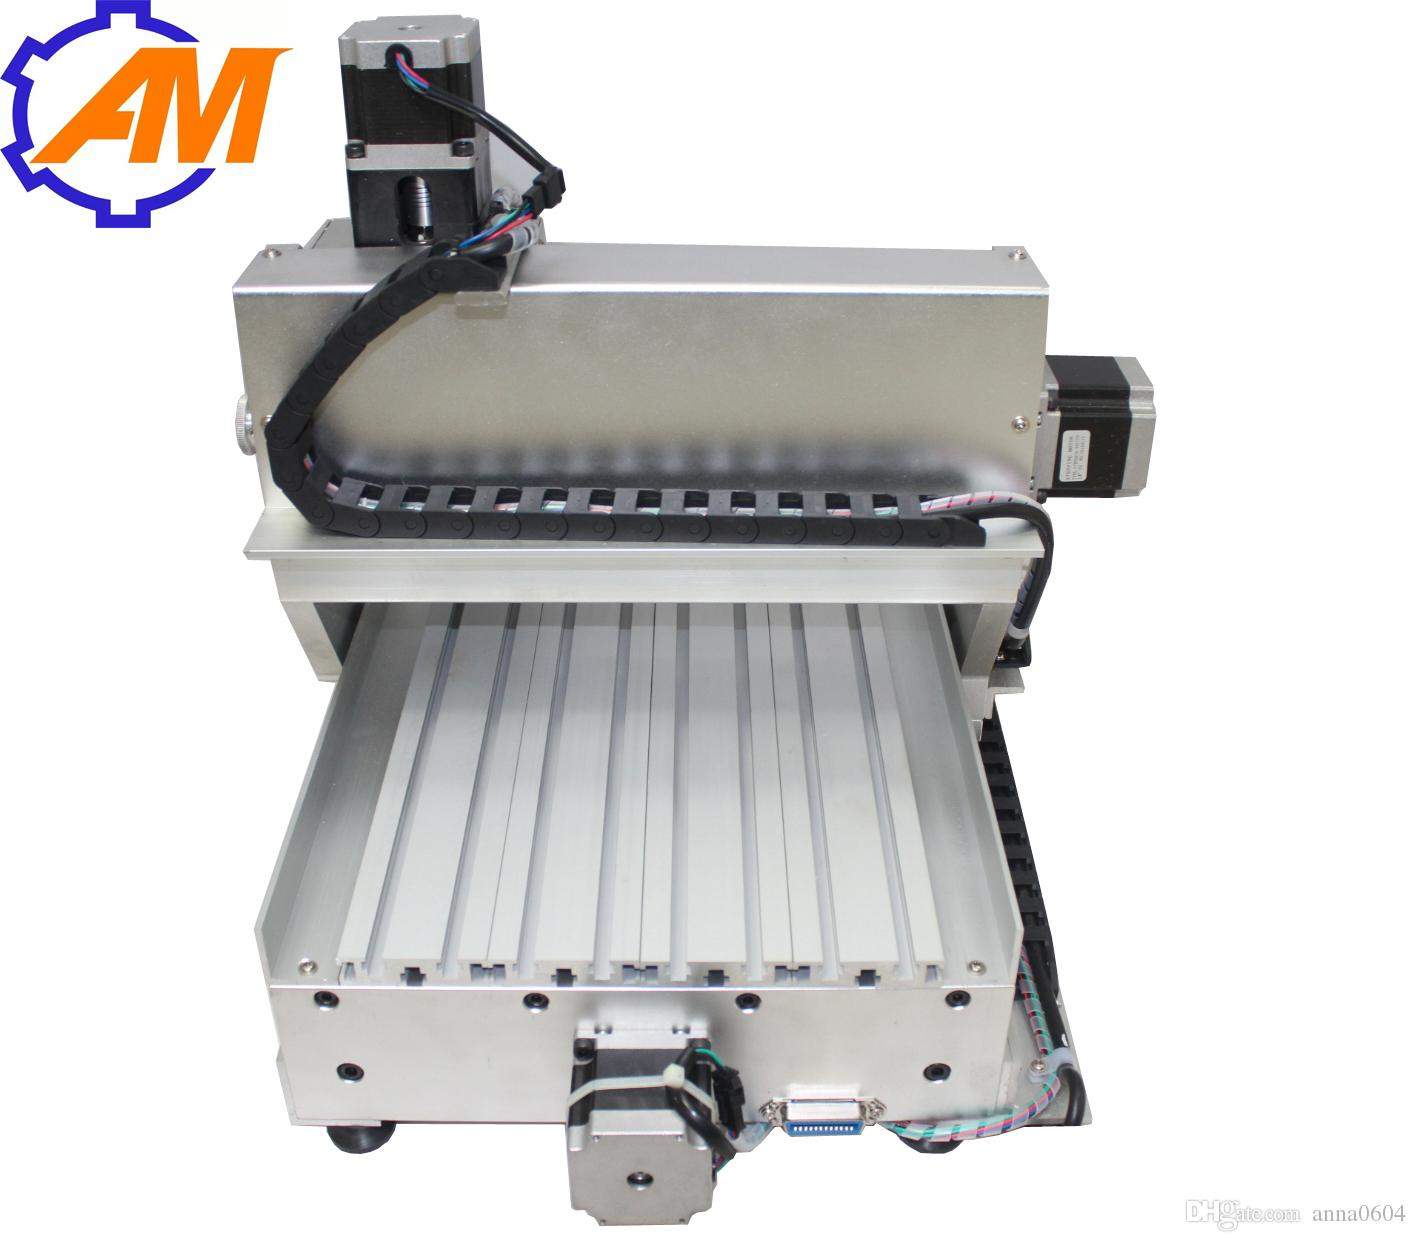 cef8db5f3ec 2019 Made In China Cnc Router 3020 , China CNC Wood Router For Sale,2016  Newest High Quality Products 3020 200w Cnc Drilling Machine From Anna0604,  ...